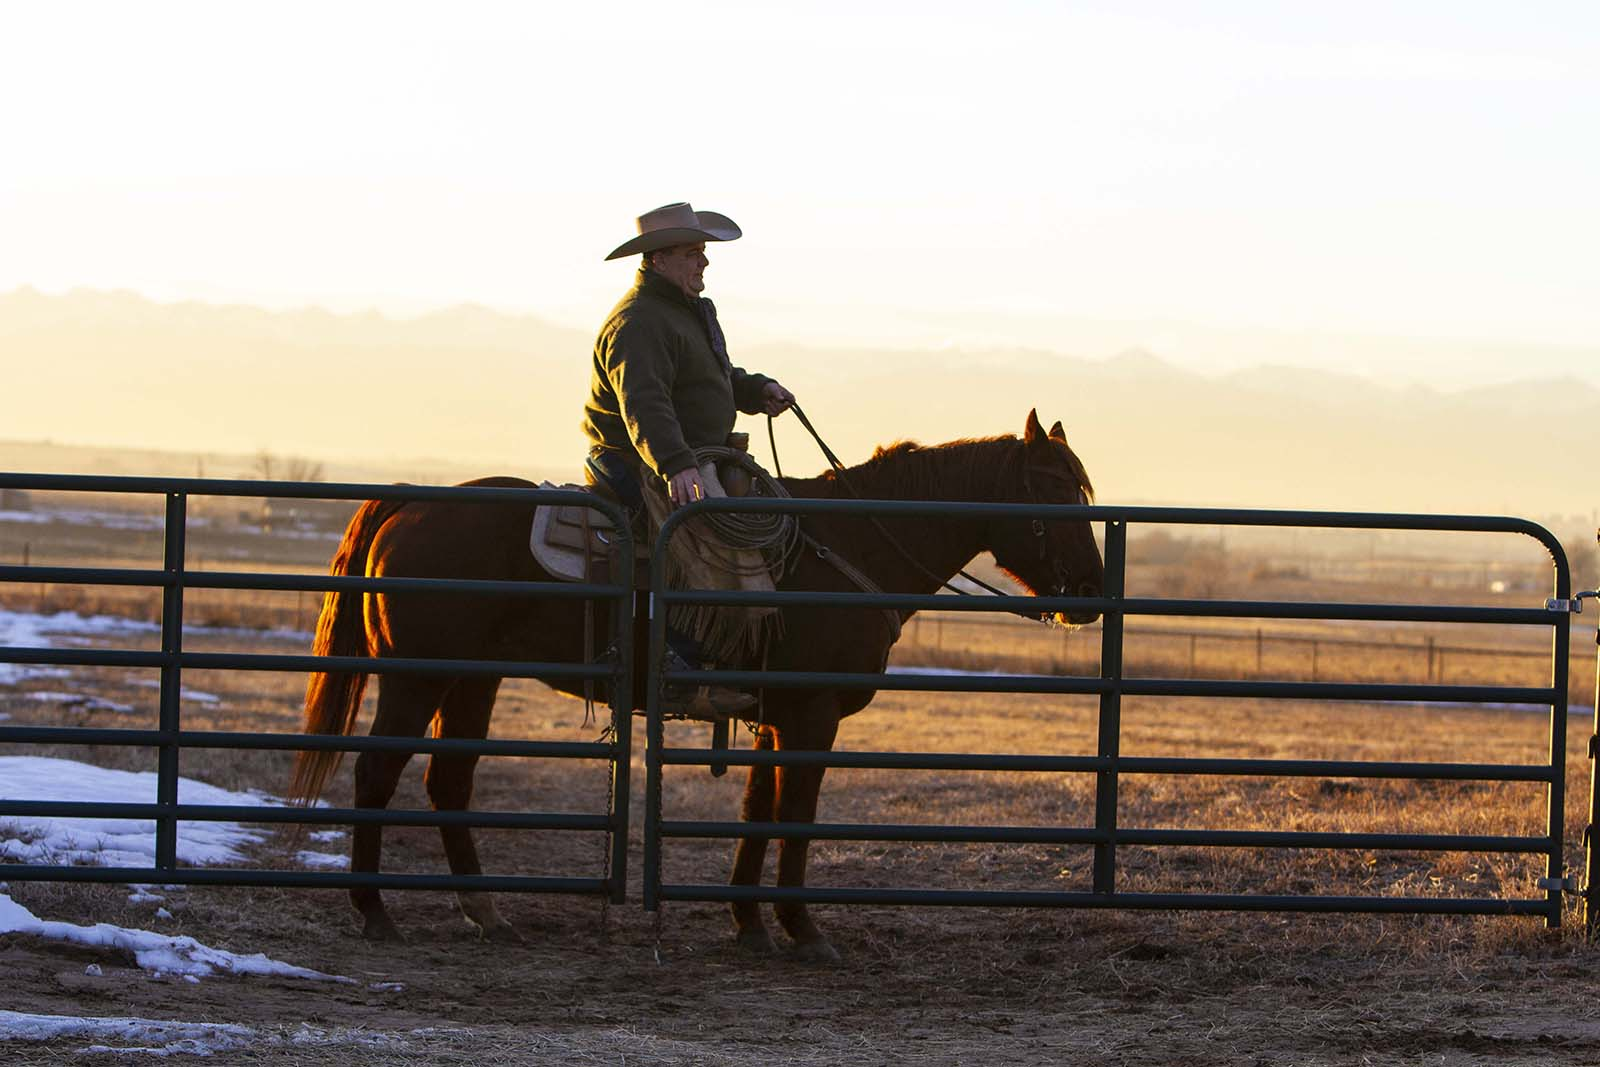 Mike Brashear opens a gate horseback in Fort Lupton, Colorado.